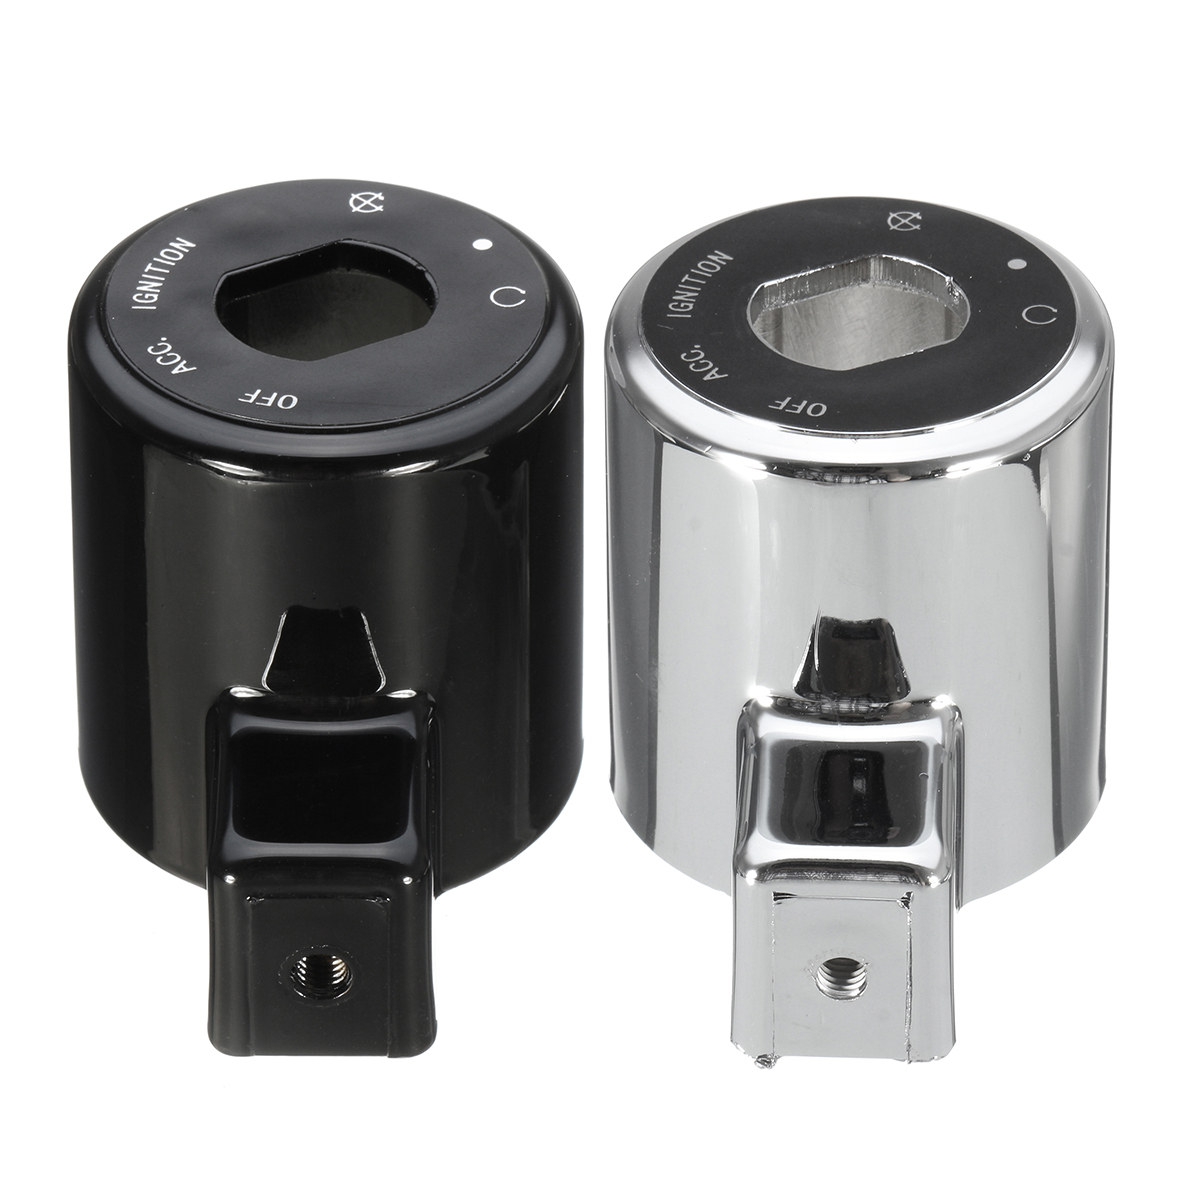 Ignition Control Switch Cover Cap For Harley Sportster Iron XL 883 XL883N 1200